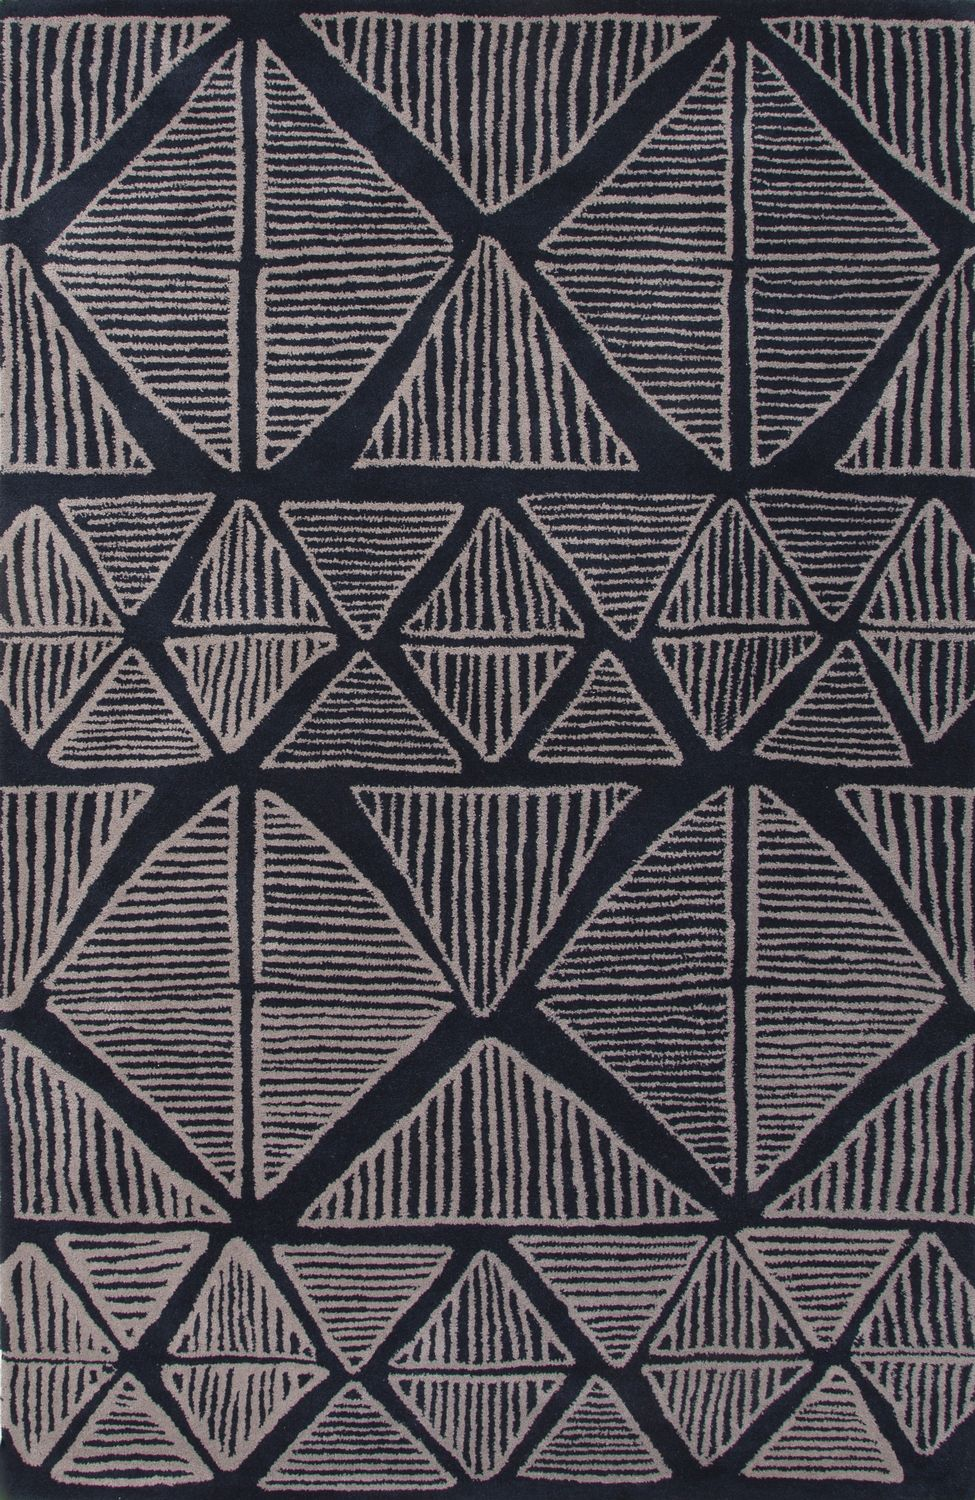 Area Rug By Jaipur Azt02